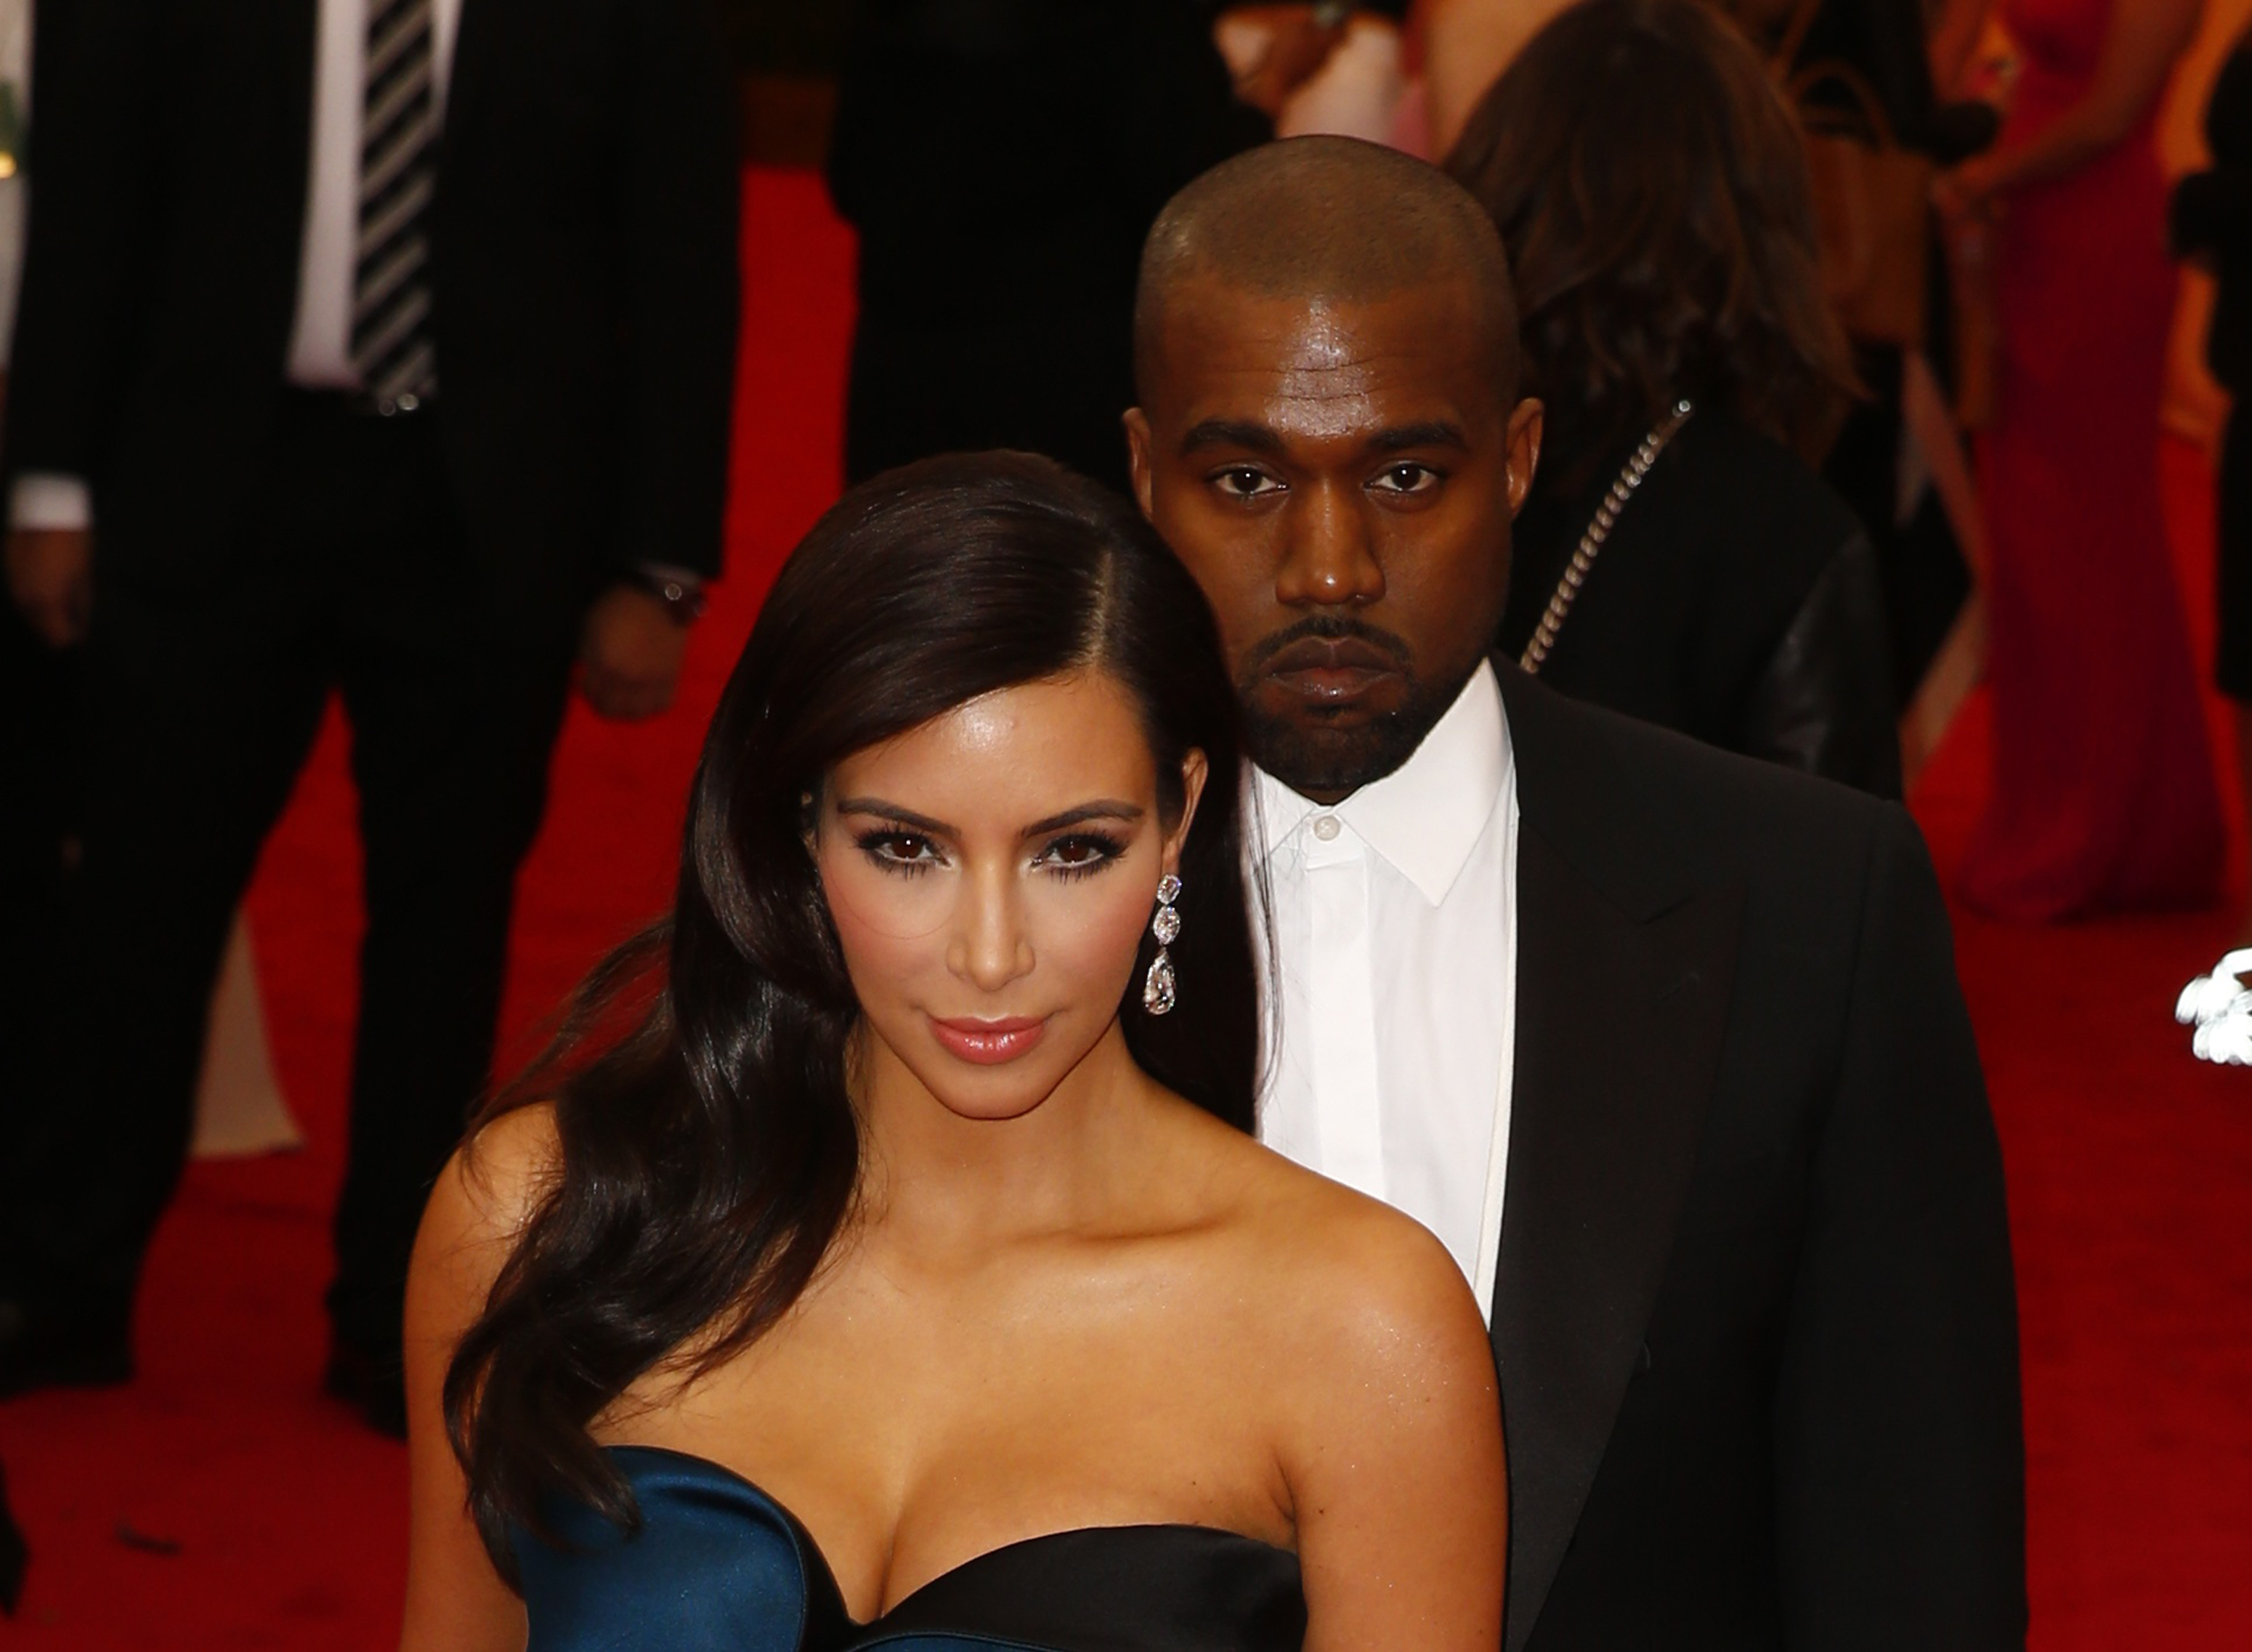 Kim Kardashian and Kanye West arrive at the Metropolitan Museum of Art Costume Institute Gala Benefit celebrating the opening of  Charles James: Beyond Fashion  in Upper Manhattan, New York, May 5, 2014.